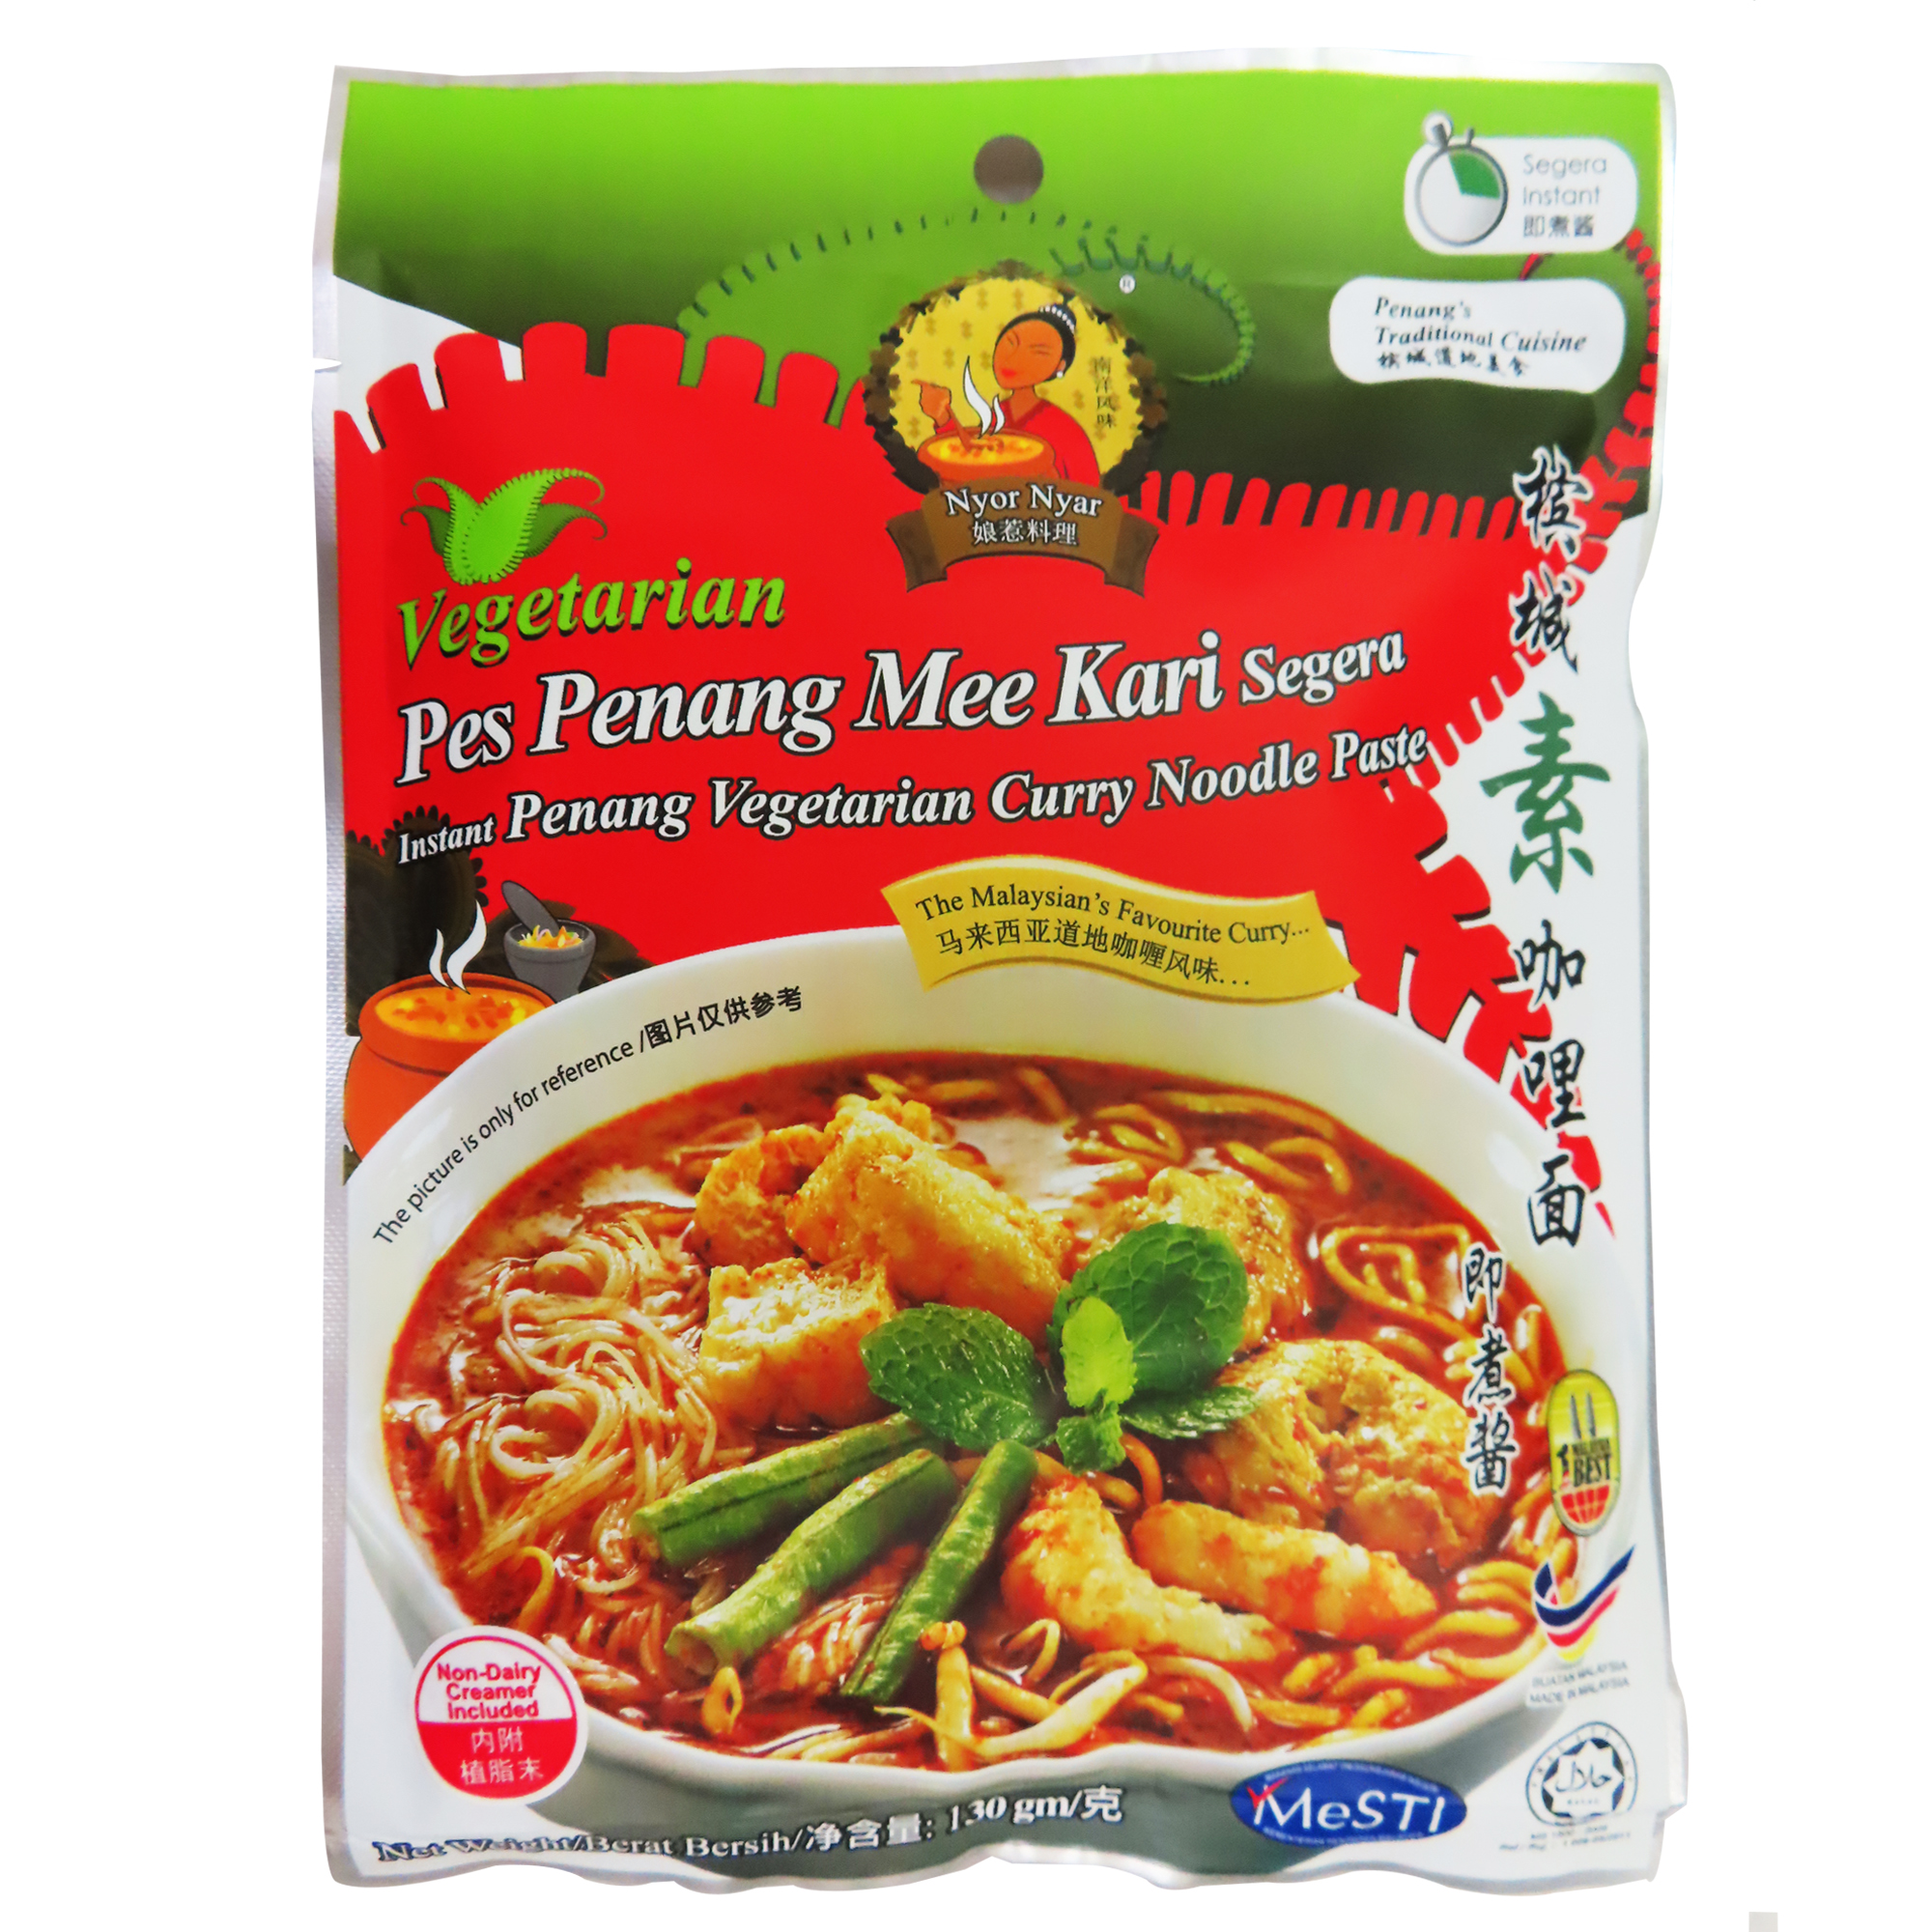 Image Penang Curry Noodle Paste 娘惹咖喱面即煮酱 130grams